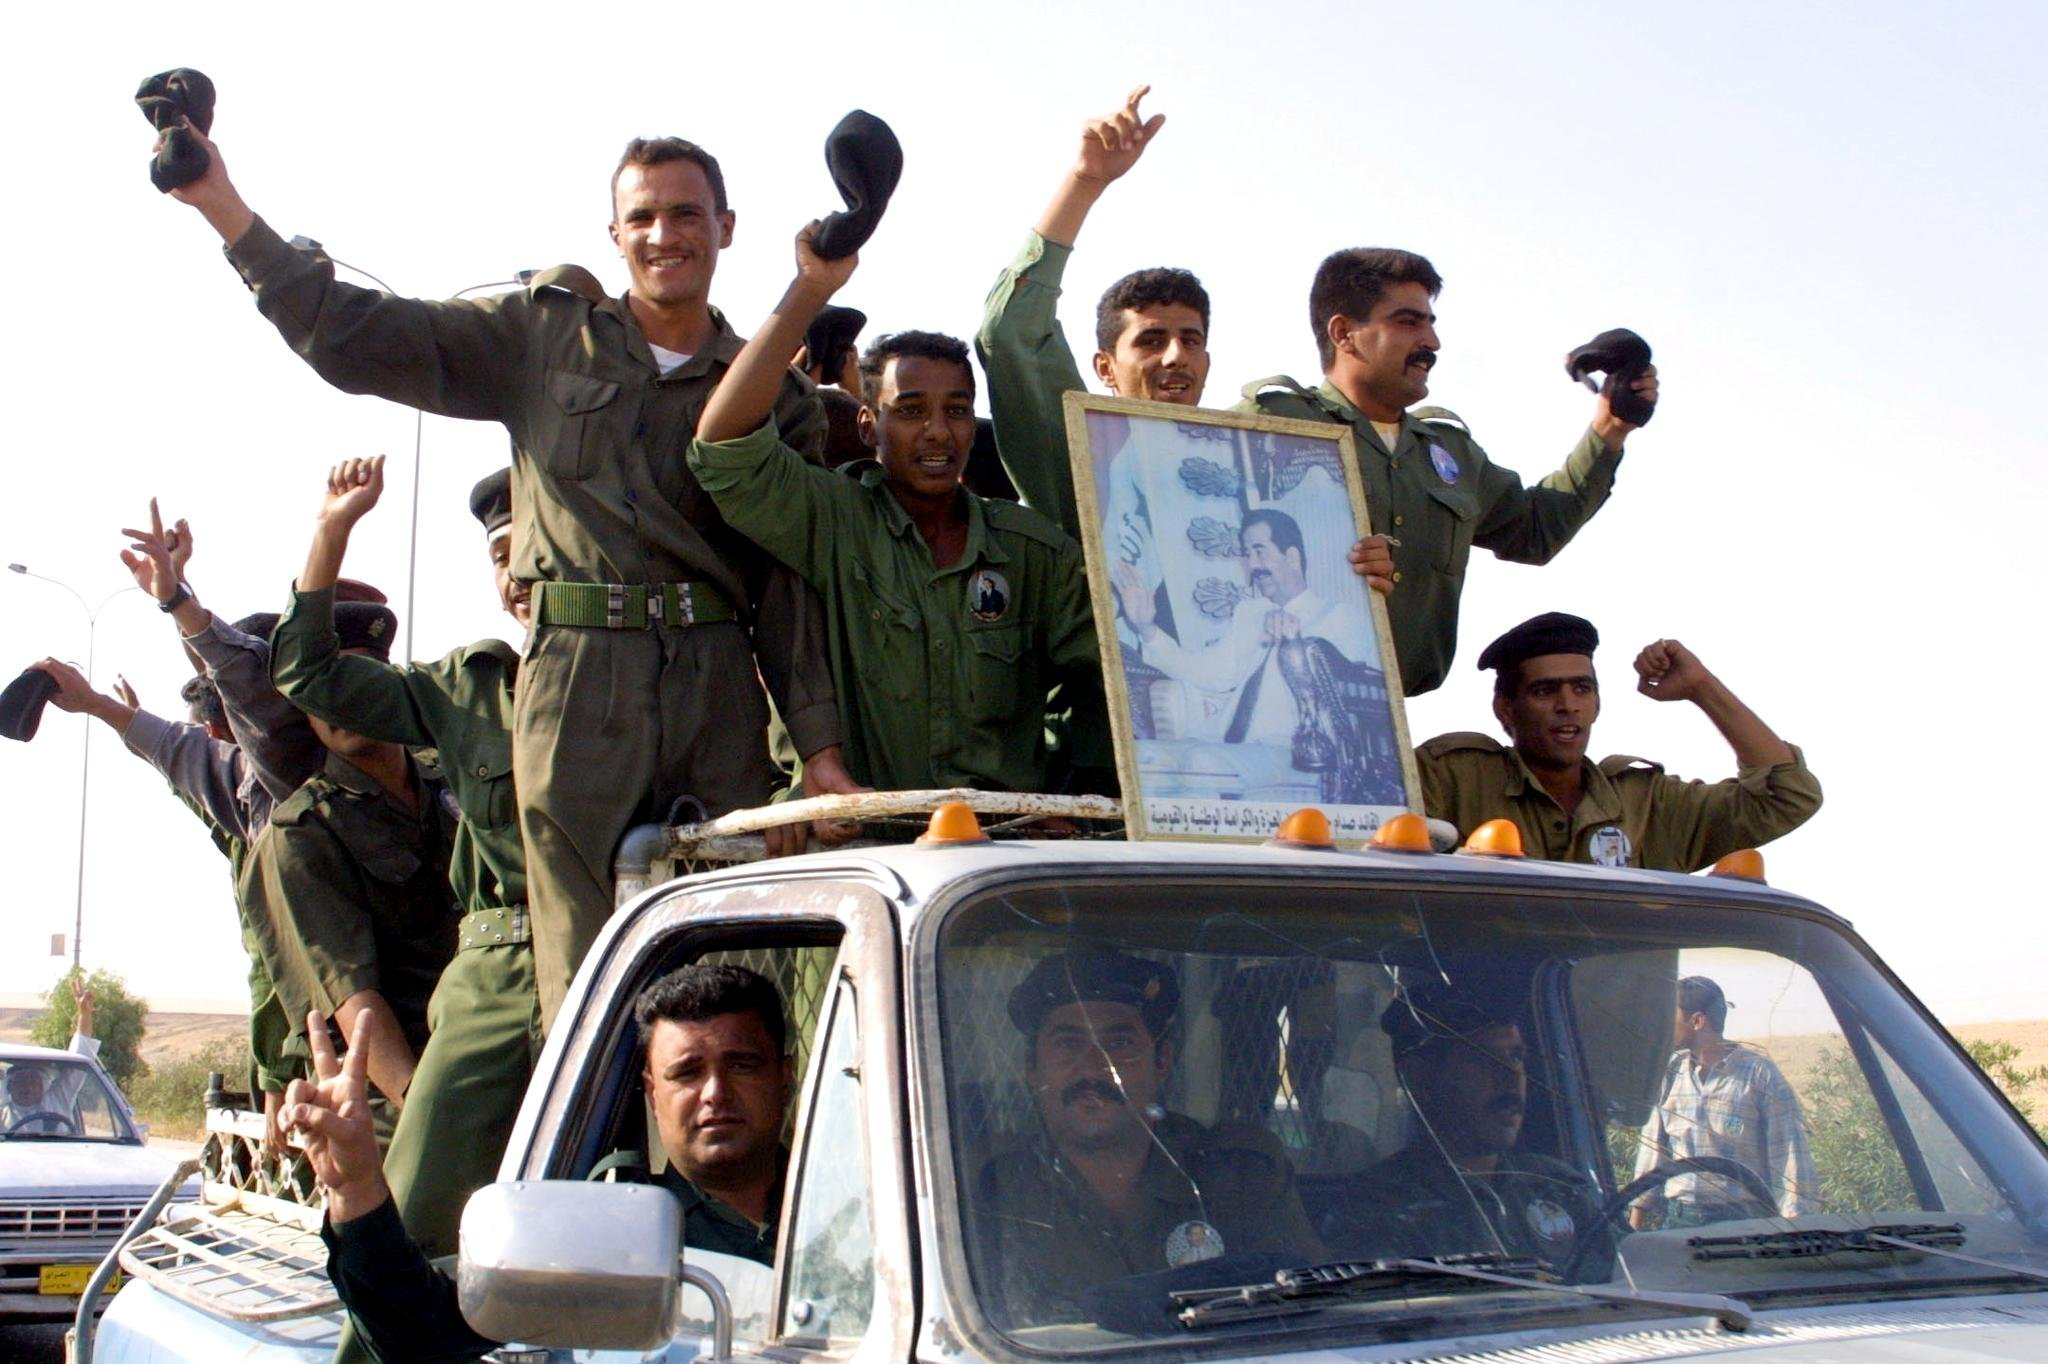 Iraqi soldiers celebrate 15 October 2002 on their way to vote in the presidential referendum in the city of Tikrit, Saddam Hussein's birthplace, some 170 kms north of the capital Baghdad